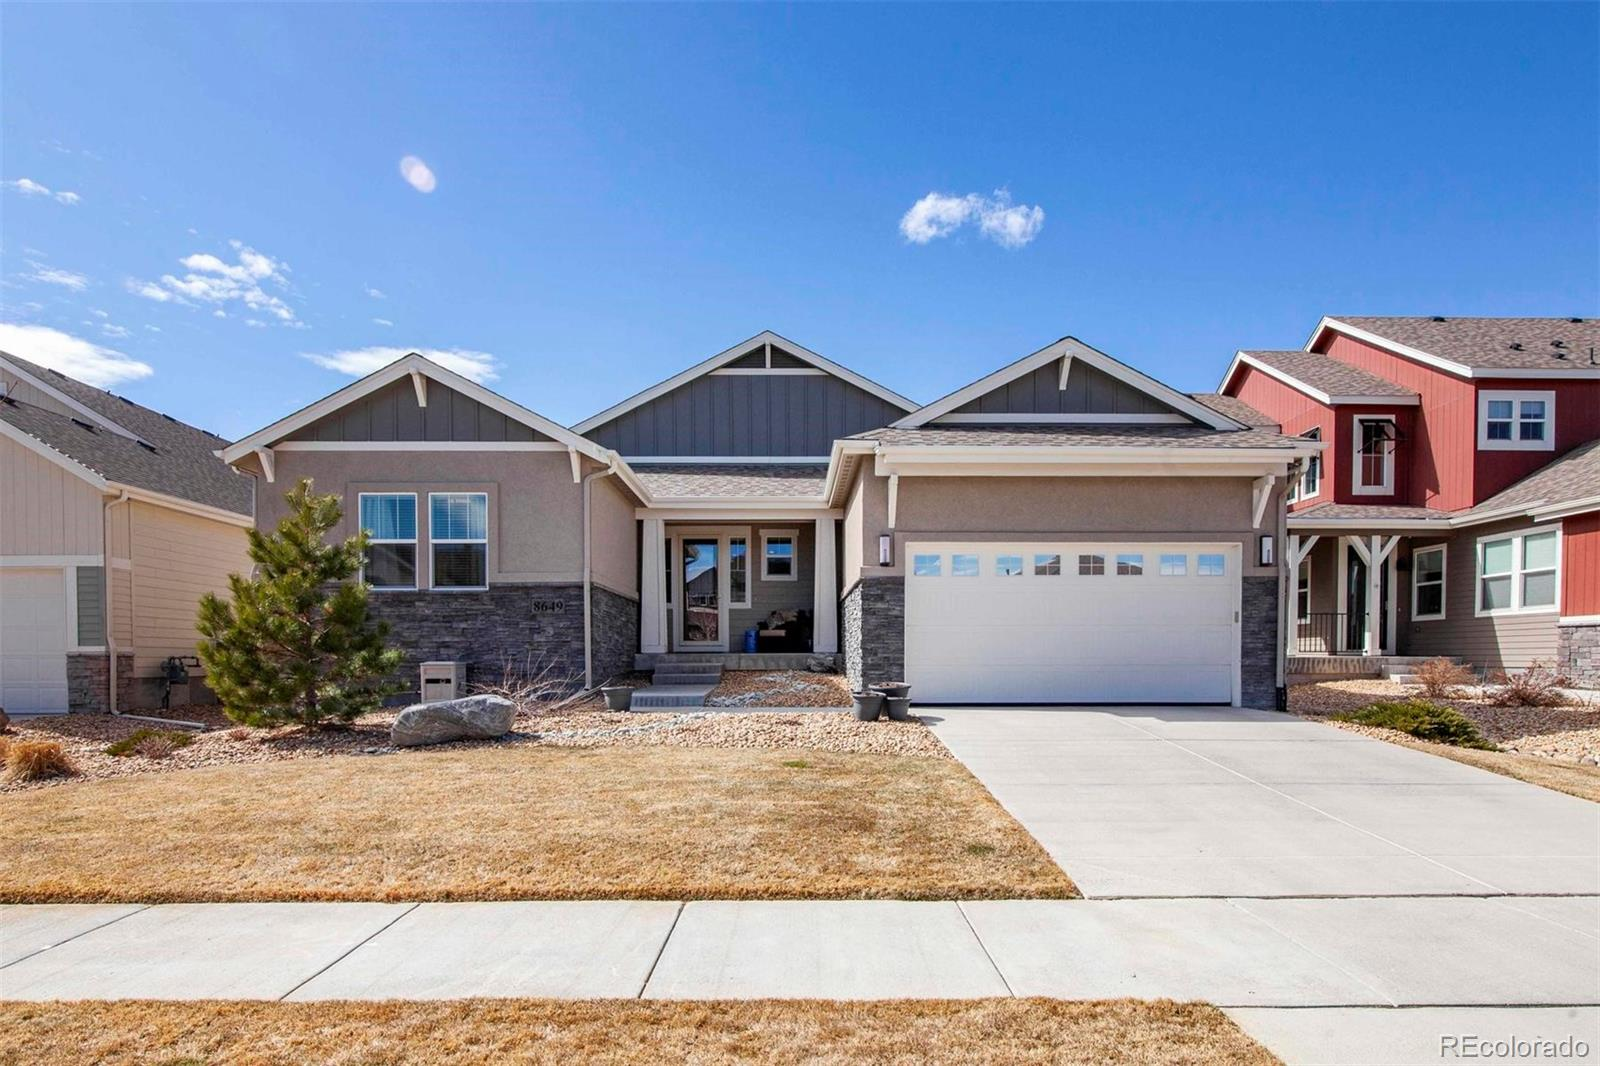 MLS# 9941099 - 8649 Windy Street, Arvada, CO 80007